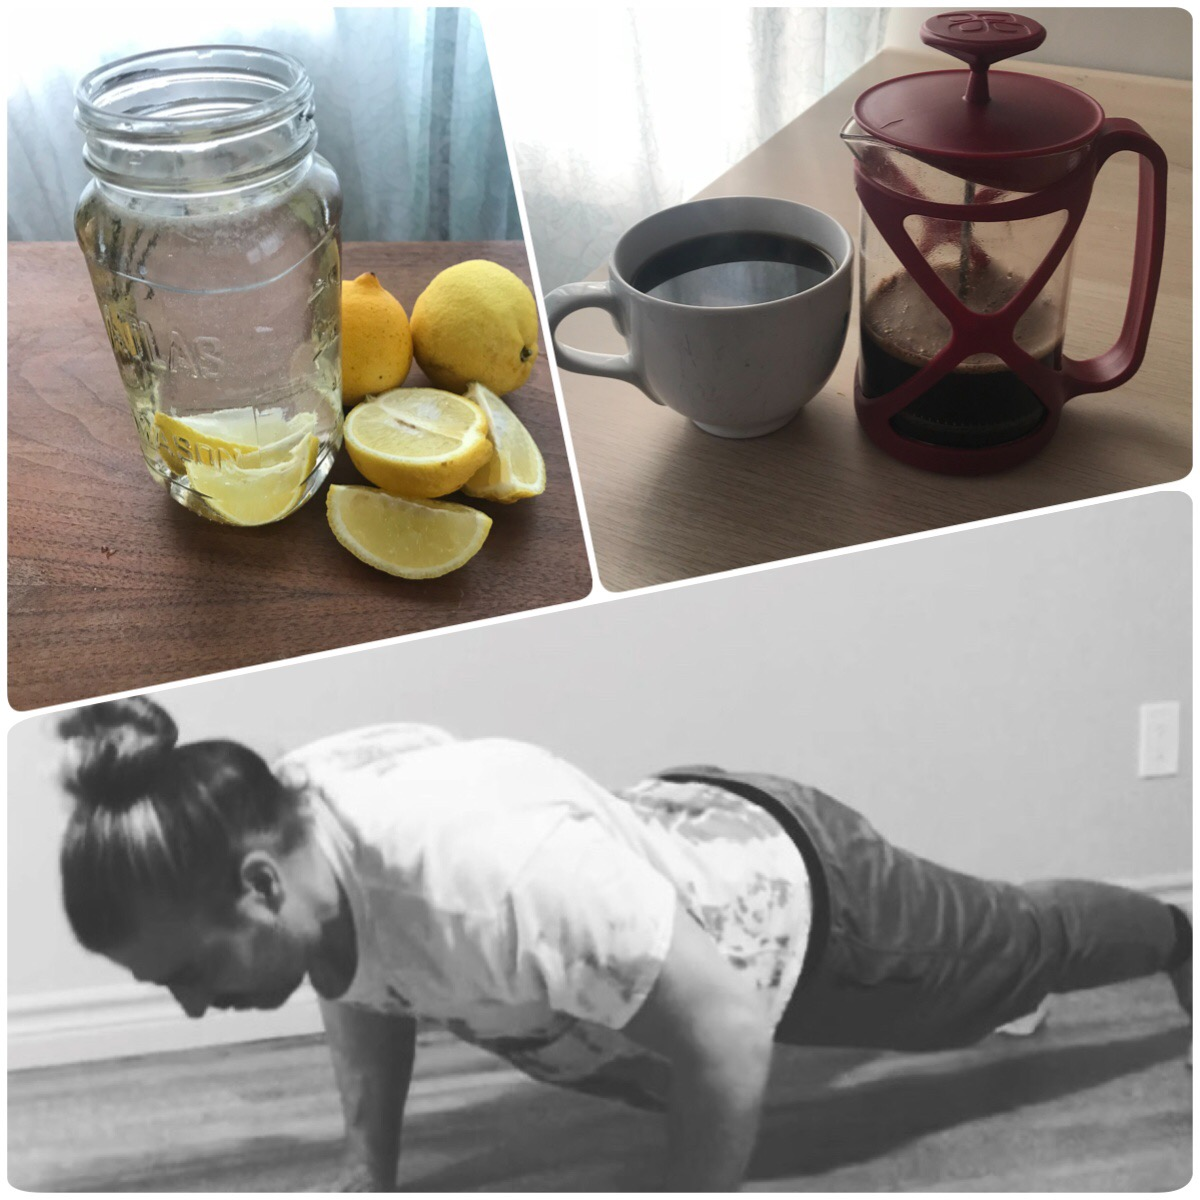 My Morning Daily Routine - PP Jutras